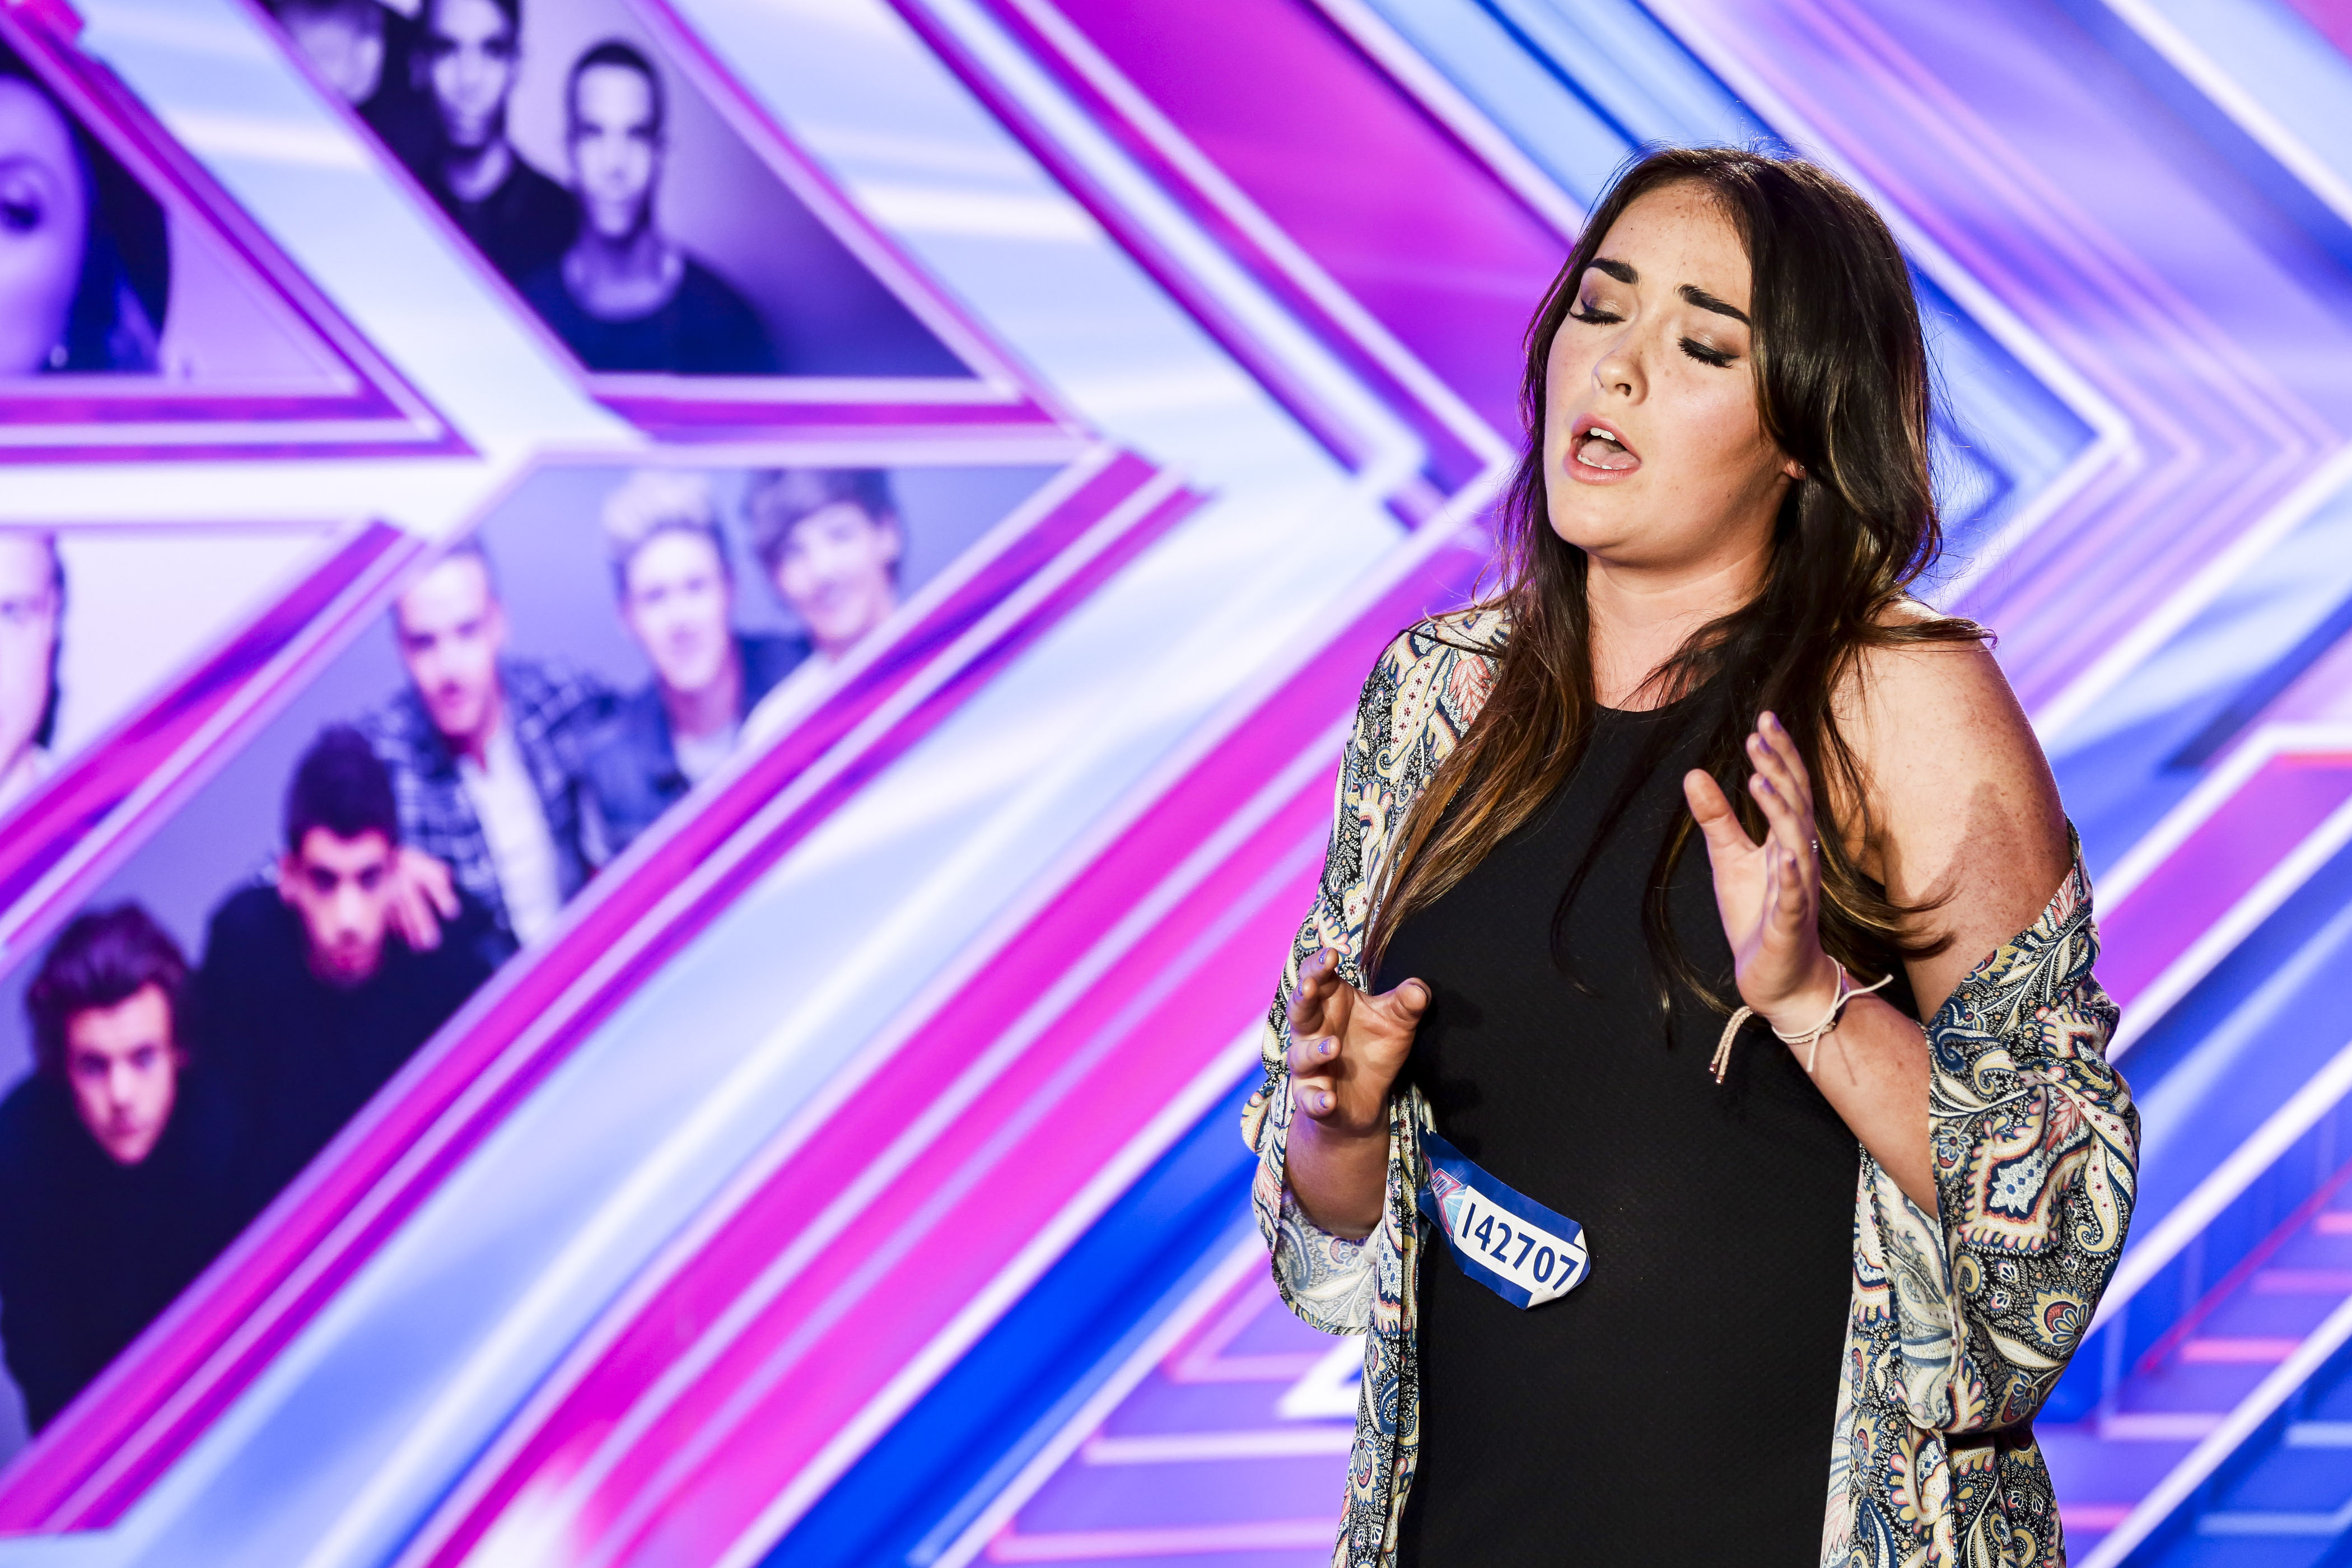 Fishmonger Lola Saunders is straight in as joint favourite alongside Jay James to win The X Factor 2014